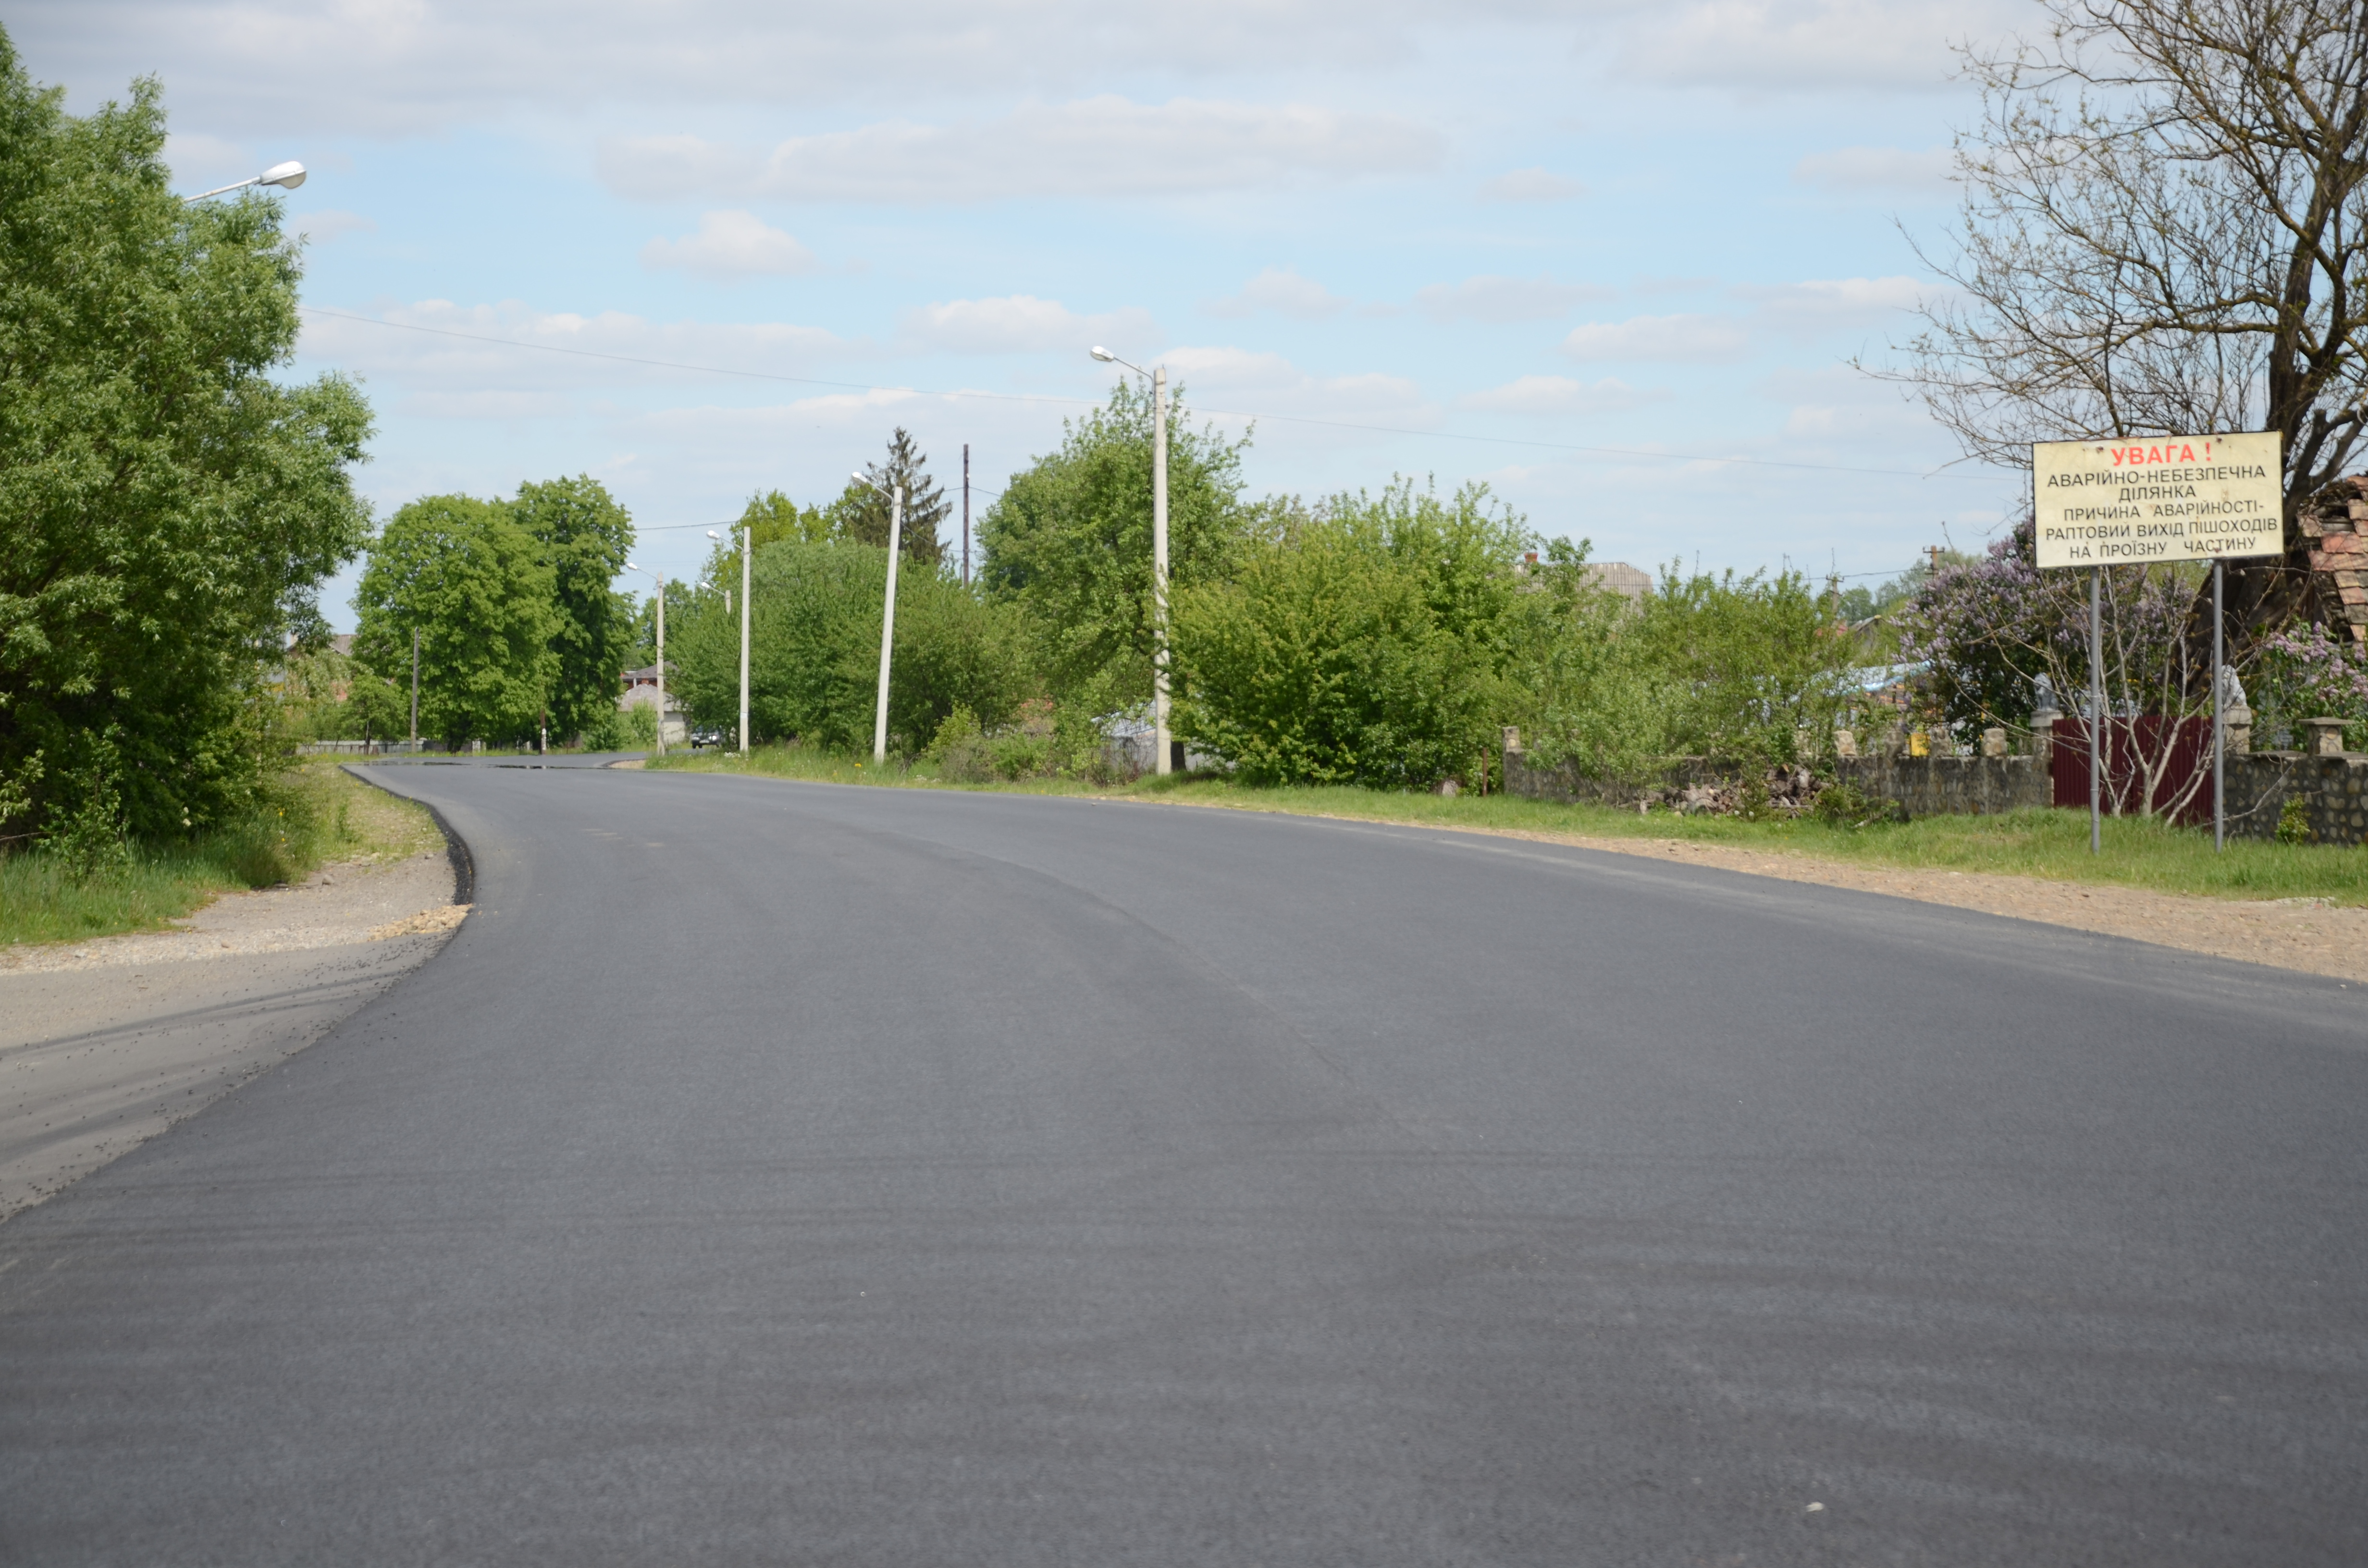 Access road to Ivano-Frankivsk repaired successfully